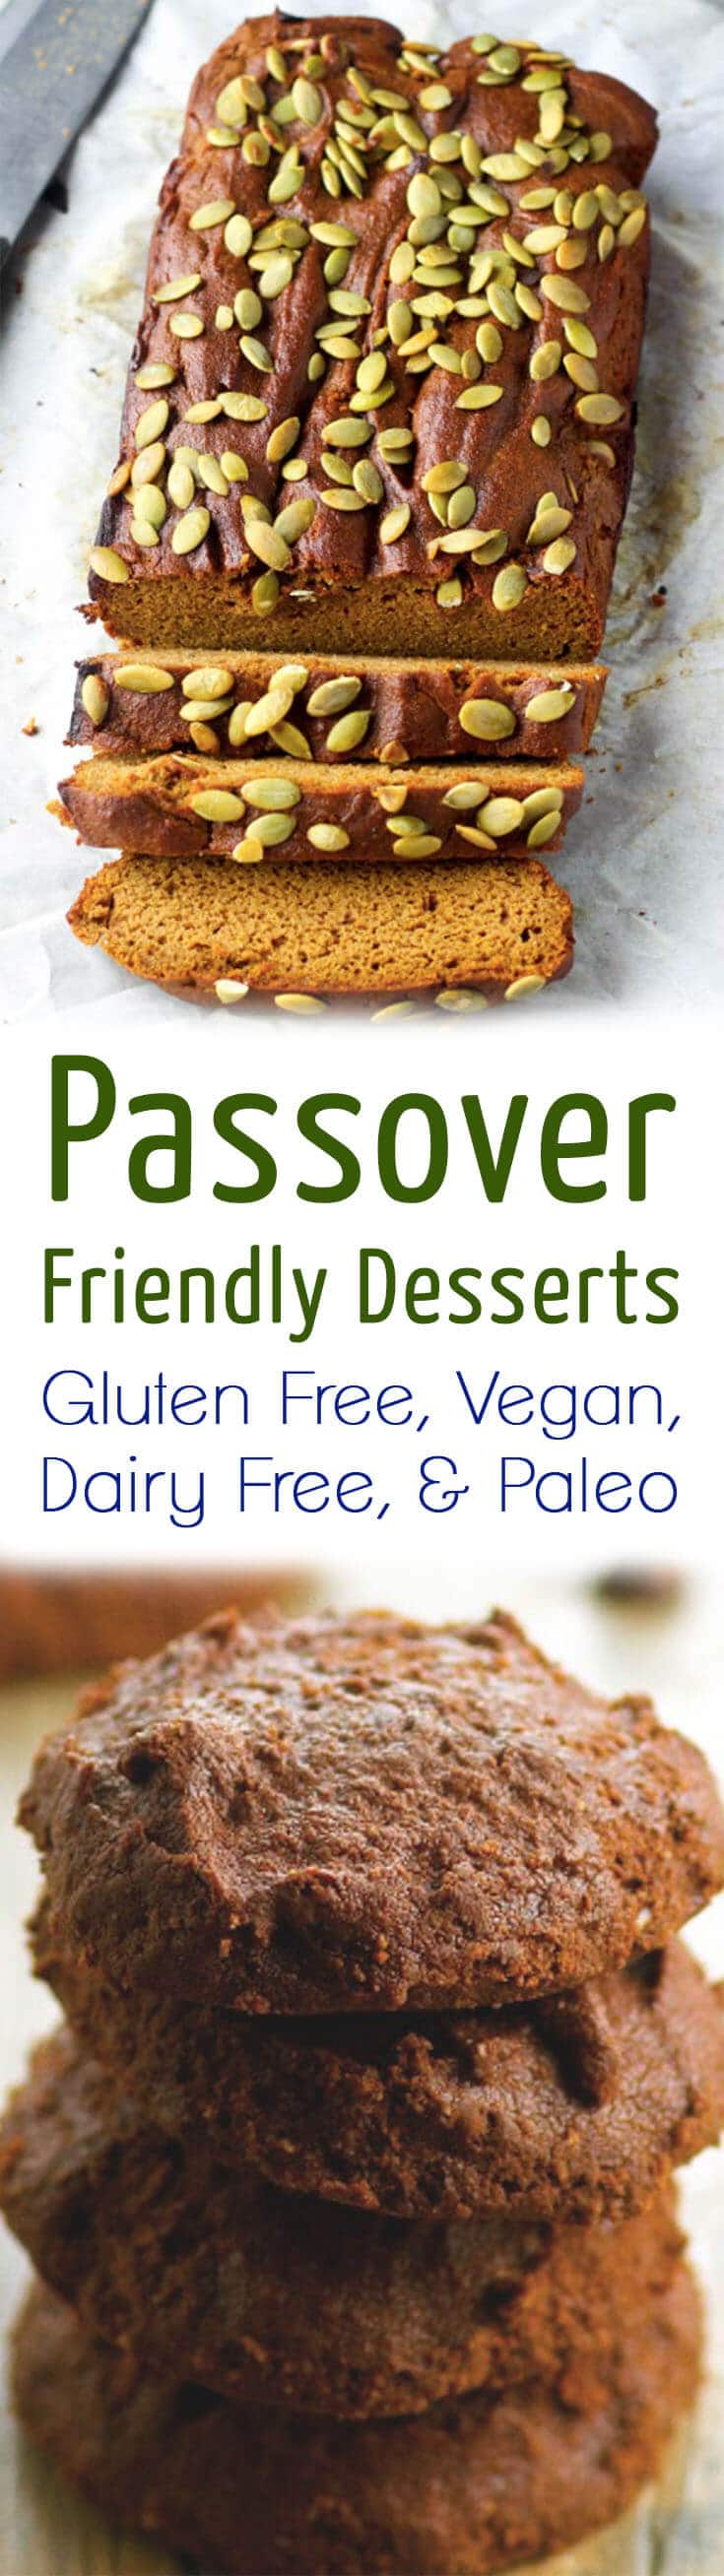 "A pinterest image of desserts with the overlay text ""Passover Friendly Desserts Gluten Free, Vegan, Dairy Free, & Paleo.\"""